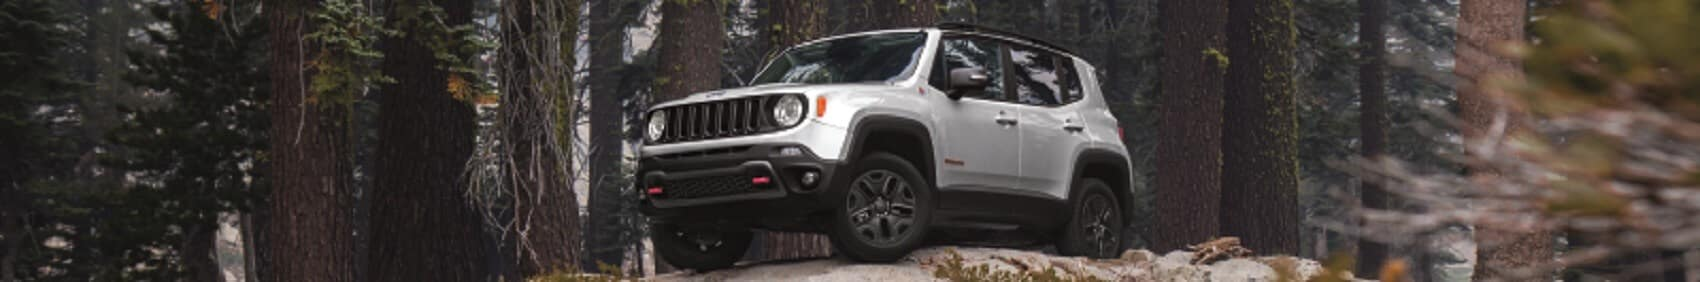 Used Jeep Dealer near Connellsville PA